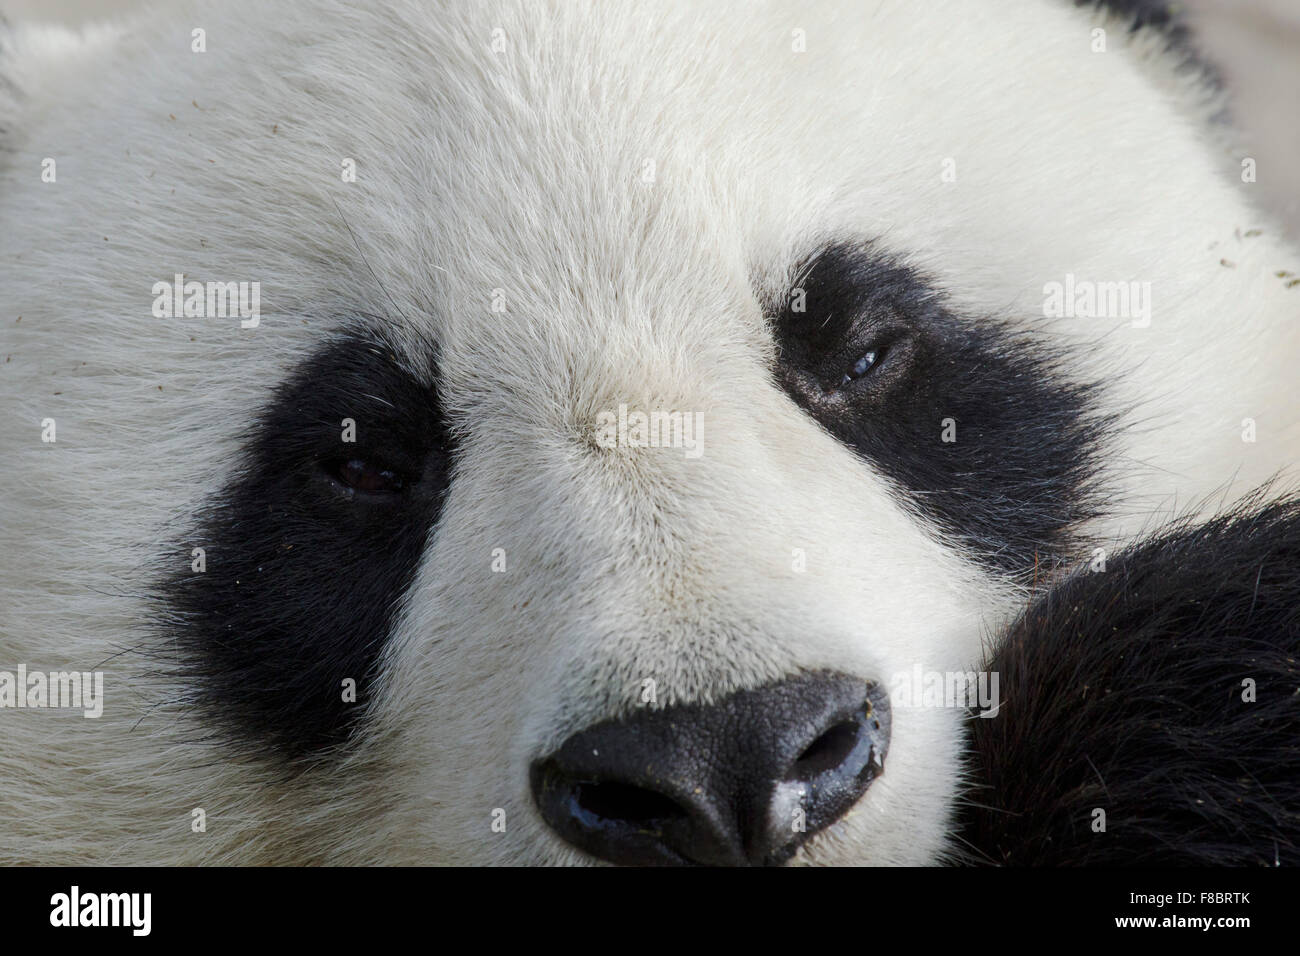 Panda close up Chengdu Panda Breeding Centre Sichuan Province China MA003082 - Stock Image